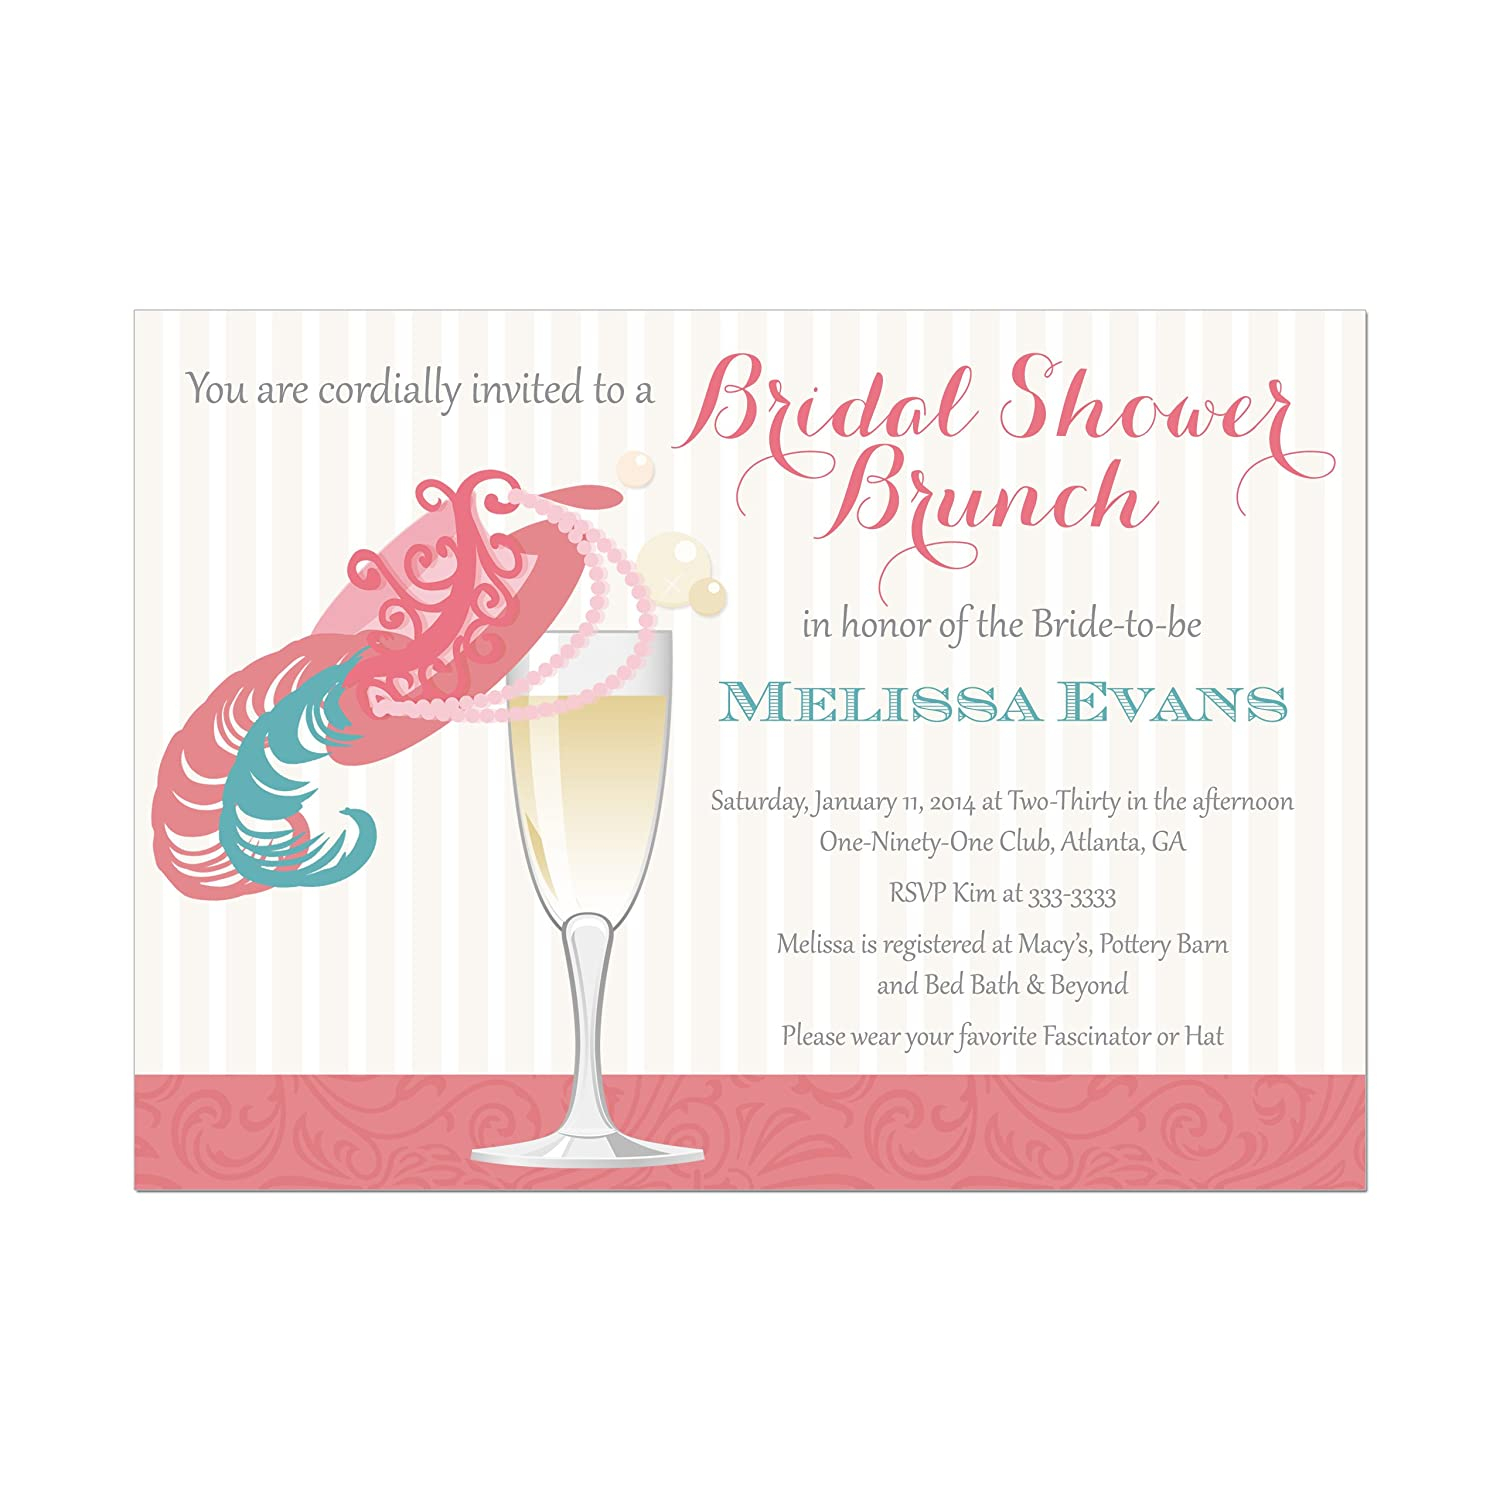 amazoncom bridal shower brunch invitation with hat and champagne glass base price if for a set of 10 invitations with white envelopes handmade